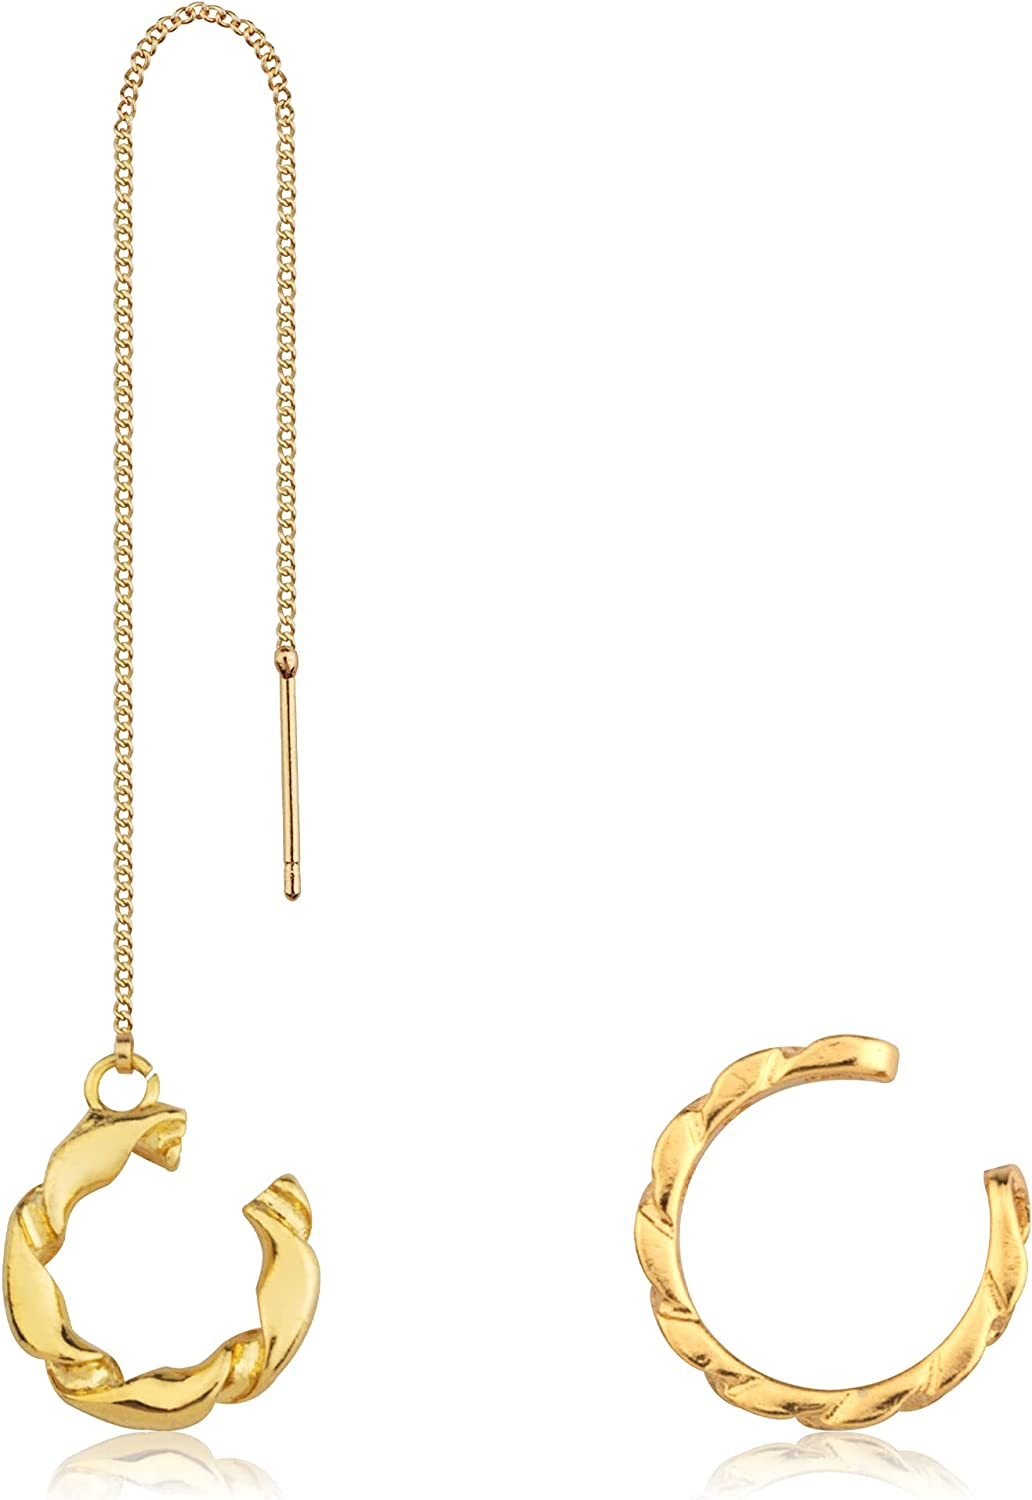 Cecillia Chain SEAL limited product Earring Cuff for On Free Shipping Cheap Bargain Gift Cartilage Clip Women